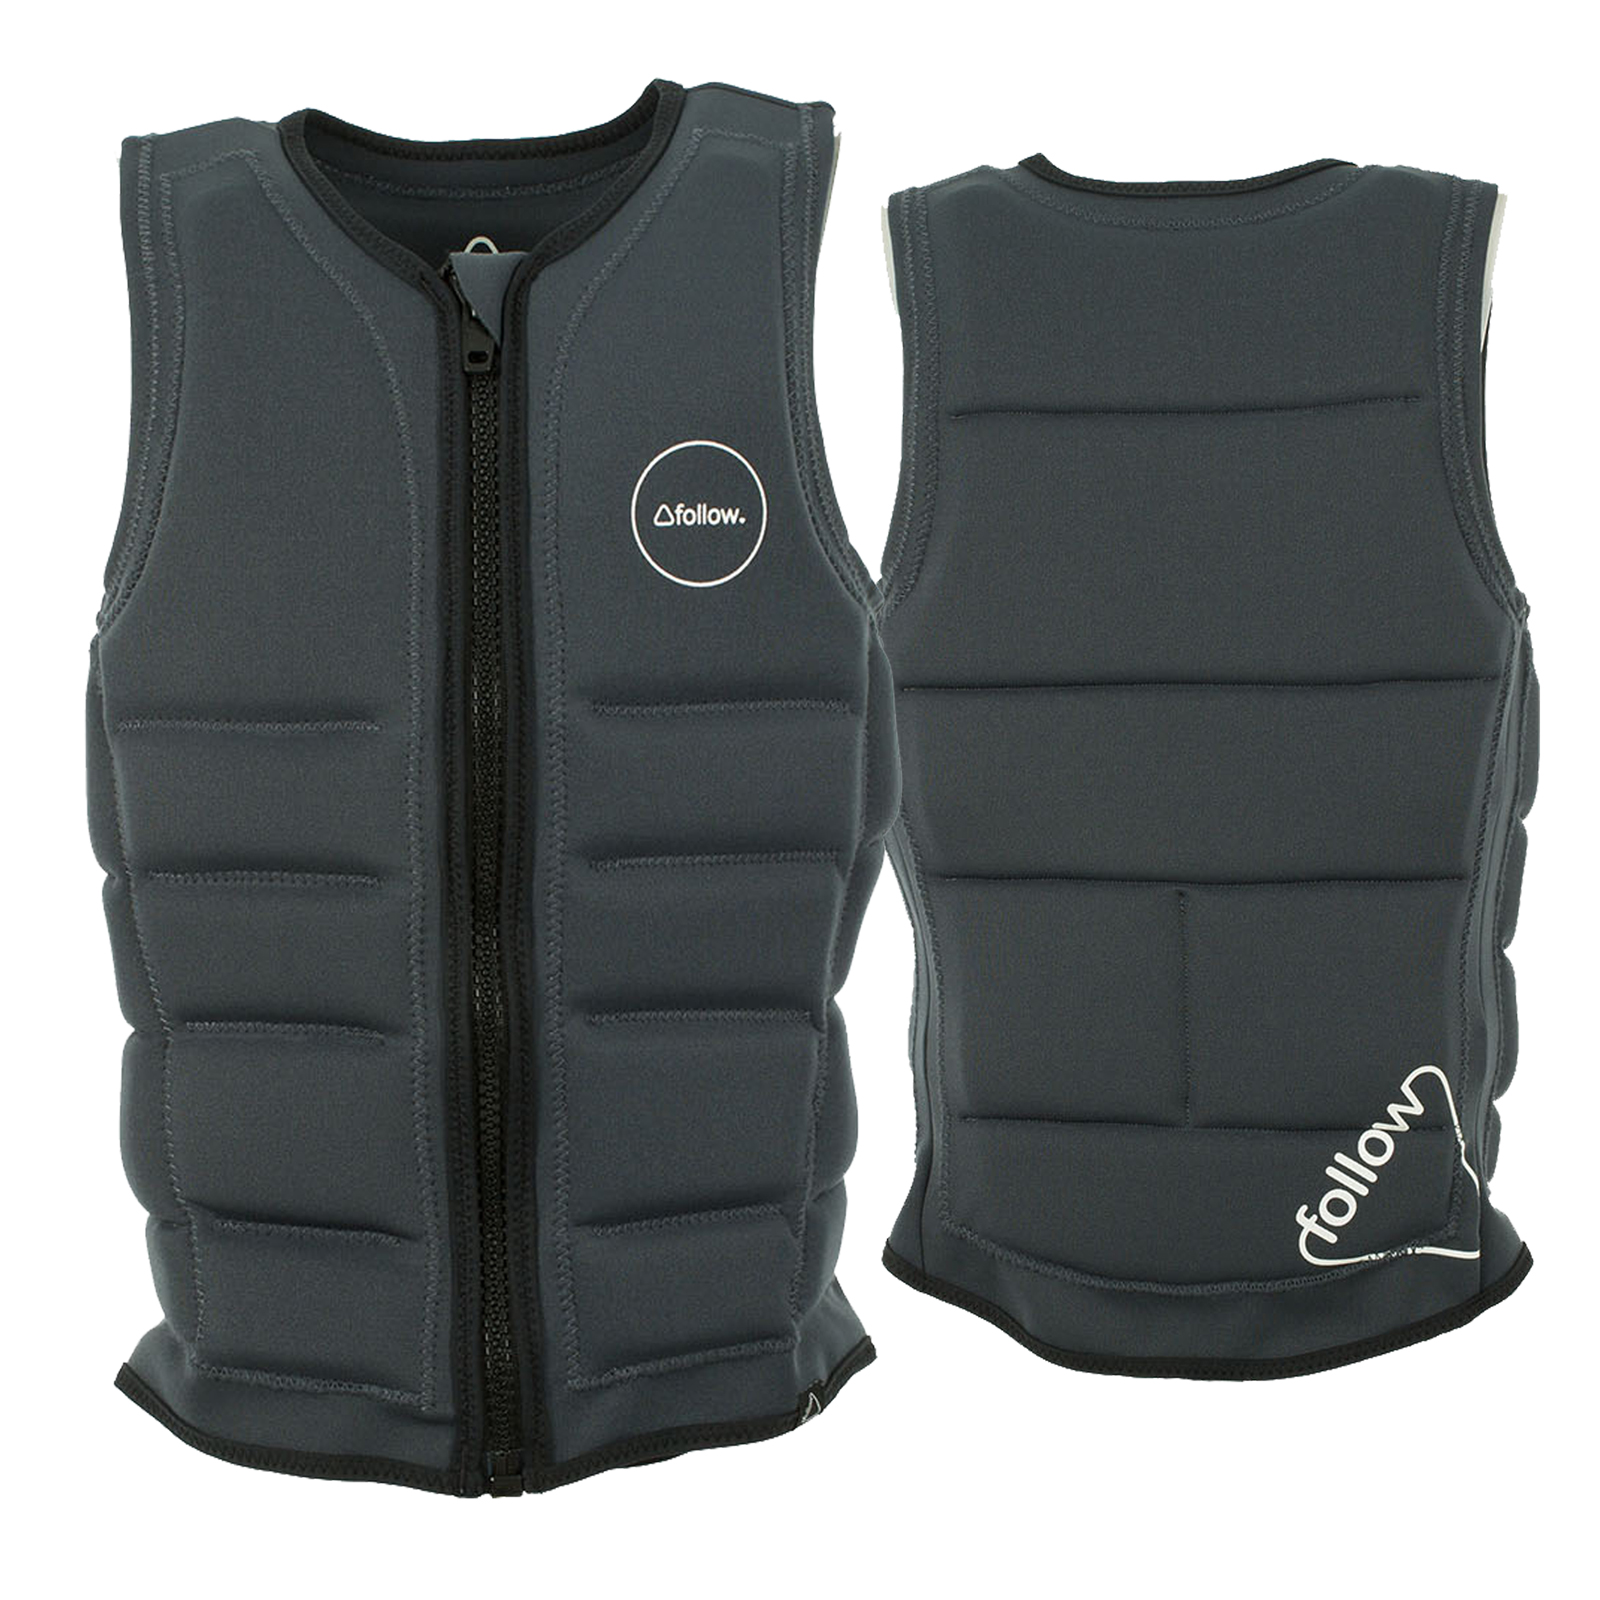 ENTRéE LADIES CE IMPACT VEST - BLACK FOLLOW 2017